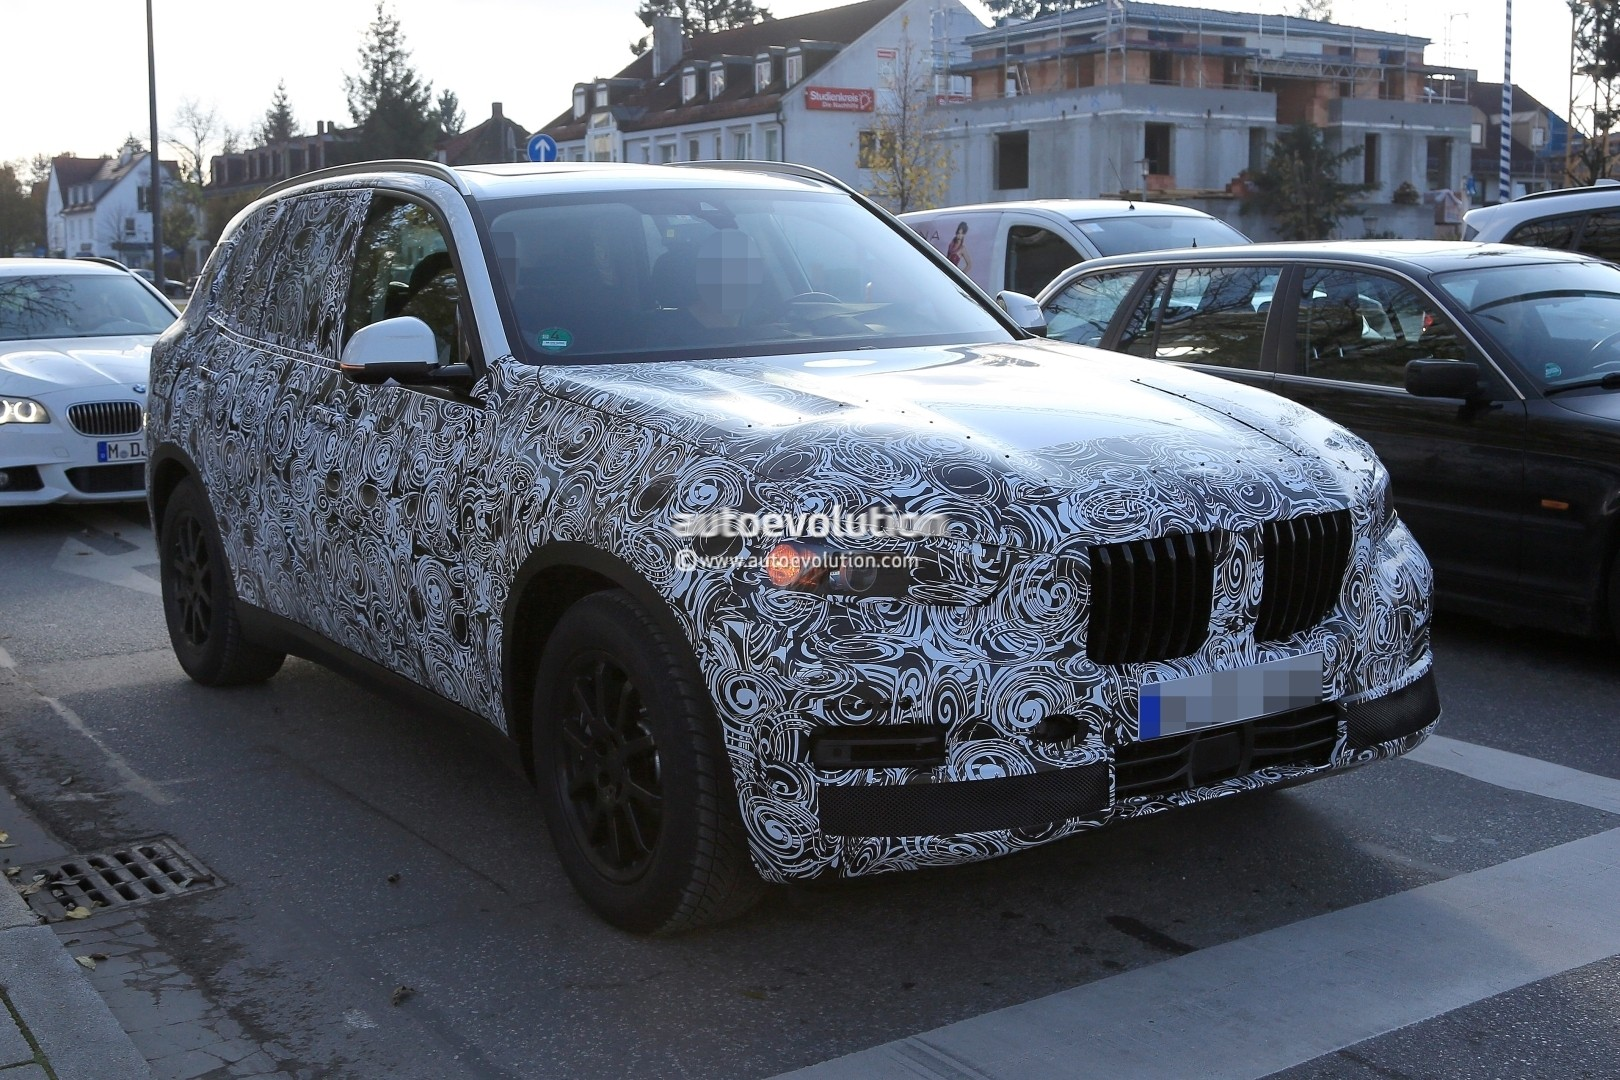 2018 - [BMW] X5 IV [G05] - Page 2 2018-bmw-x5-pre-production-prototype-first-spyshtos-reveal-huge-kidney-grilles_3